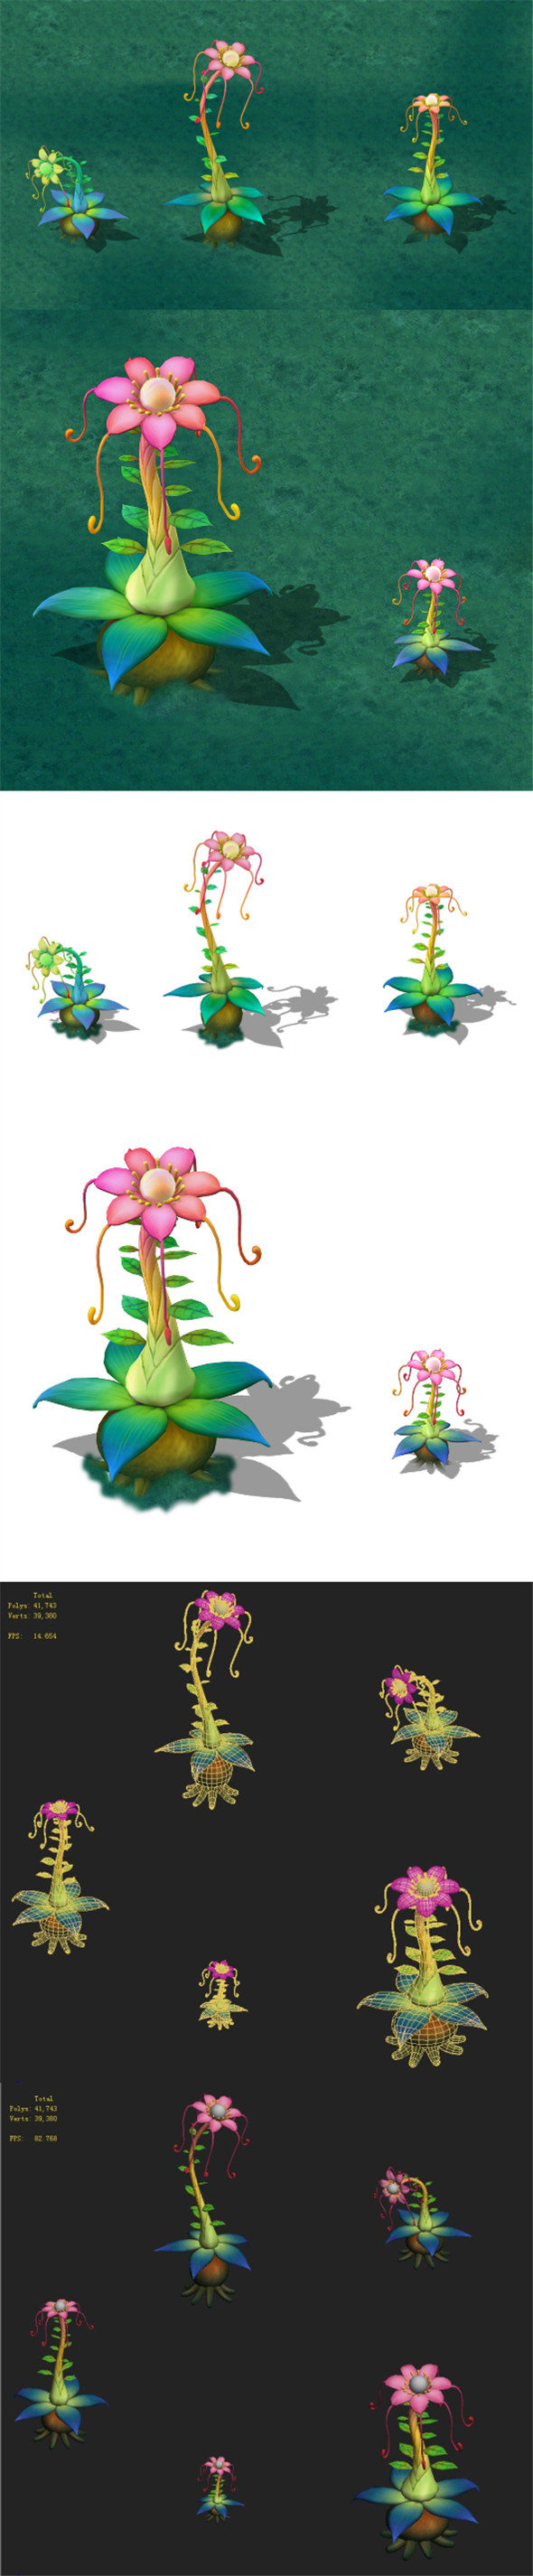 Cartoon version - Prophet magic flower - 3DOcean Item for Sale